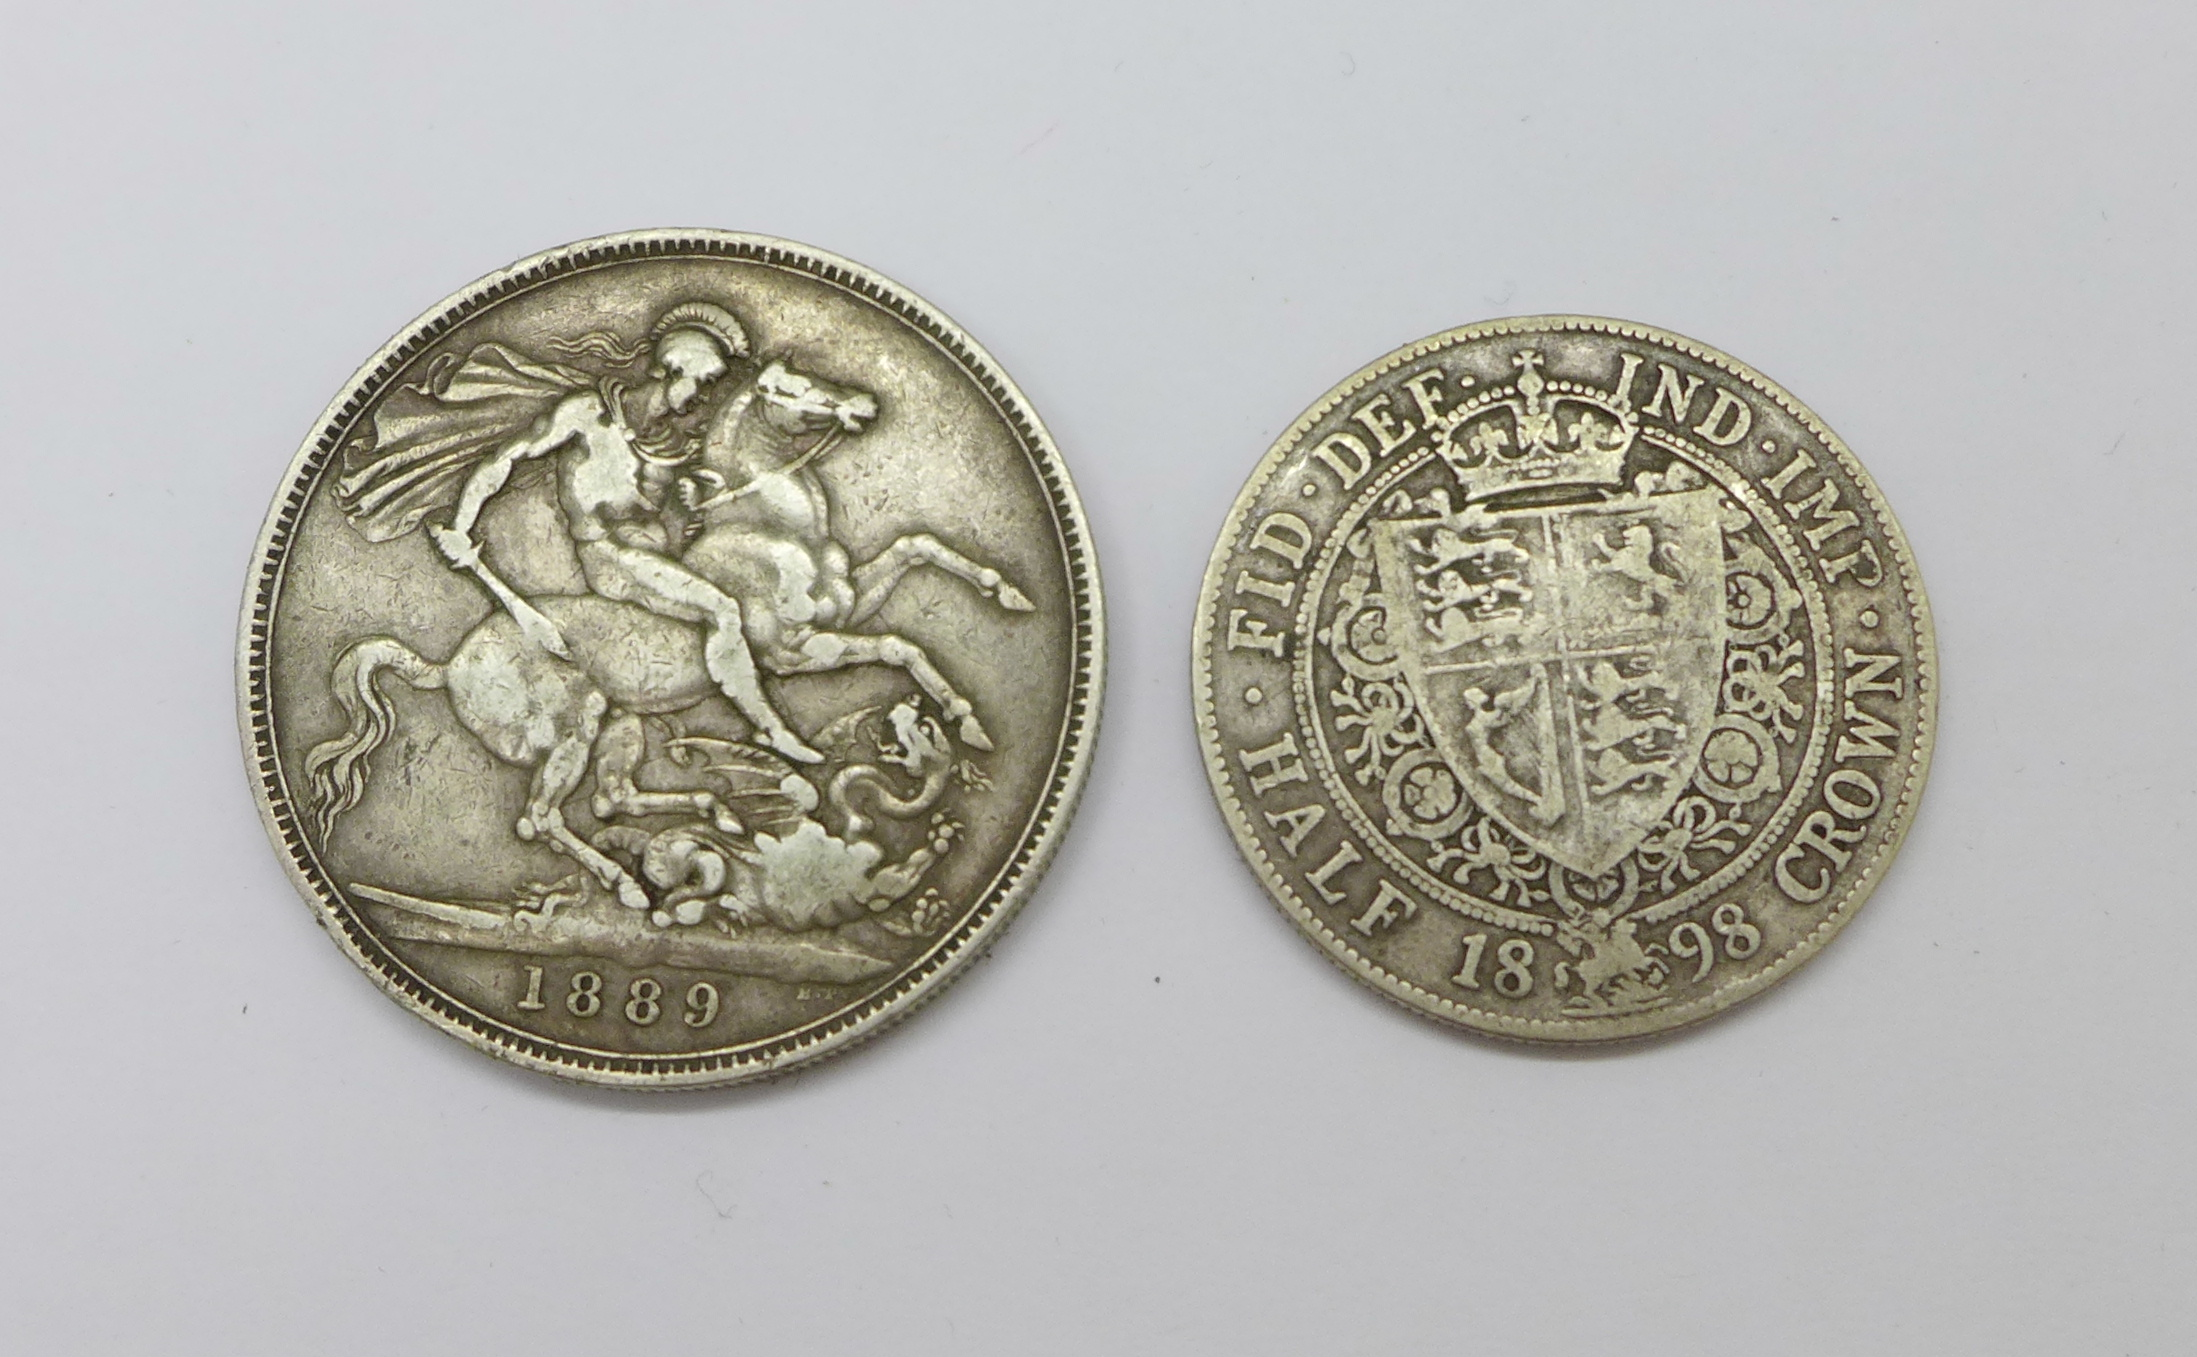 A Victorian 1889 crown and an 1898 half crown